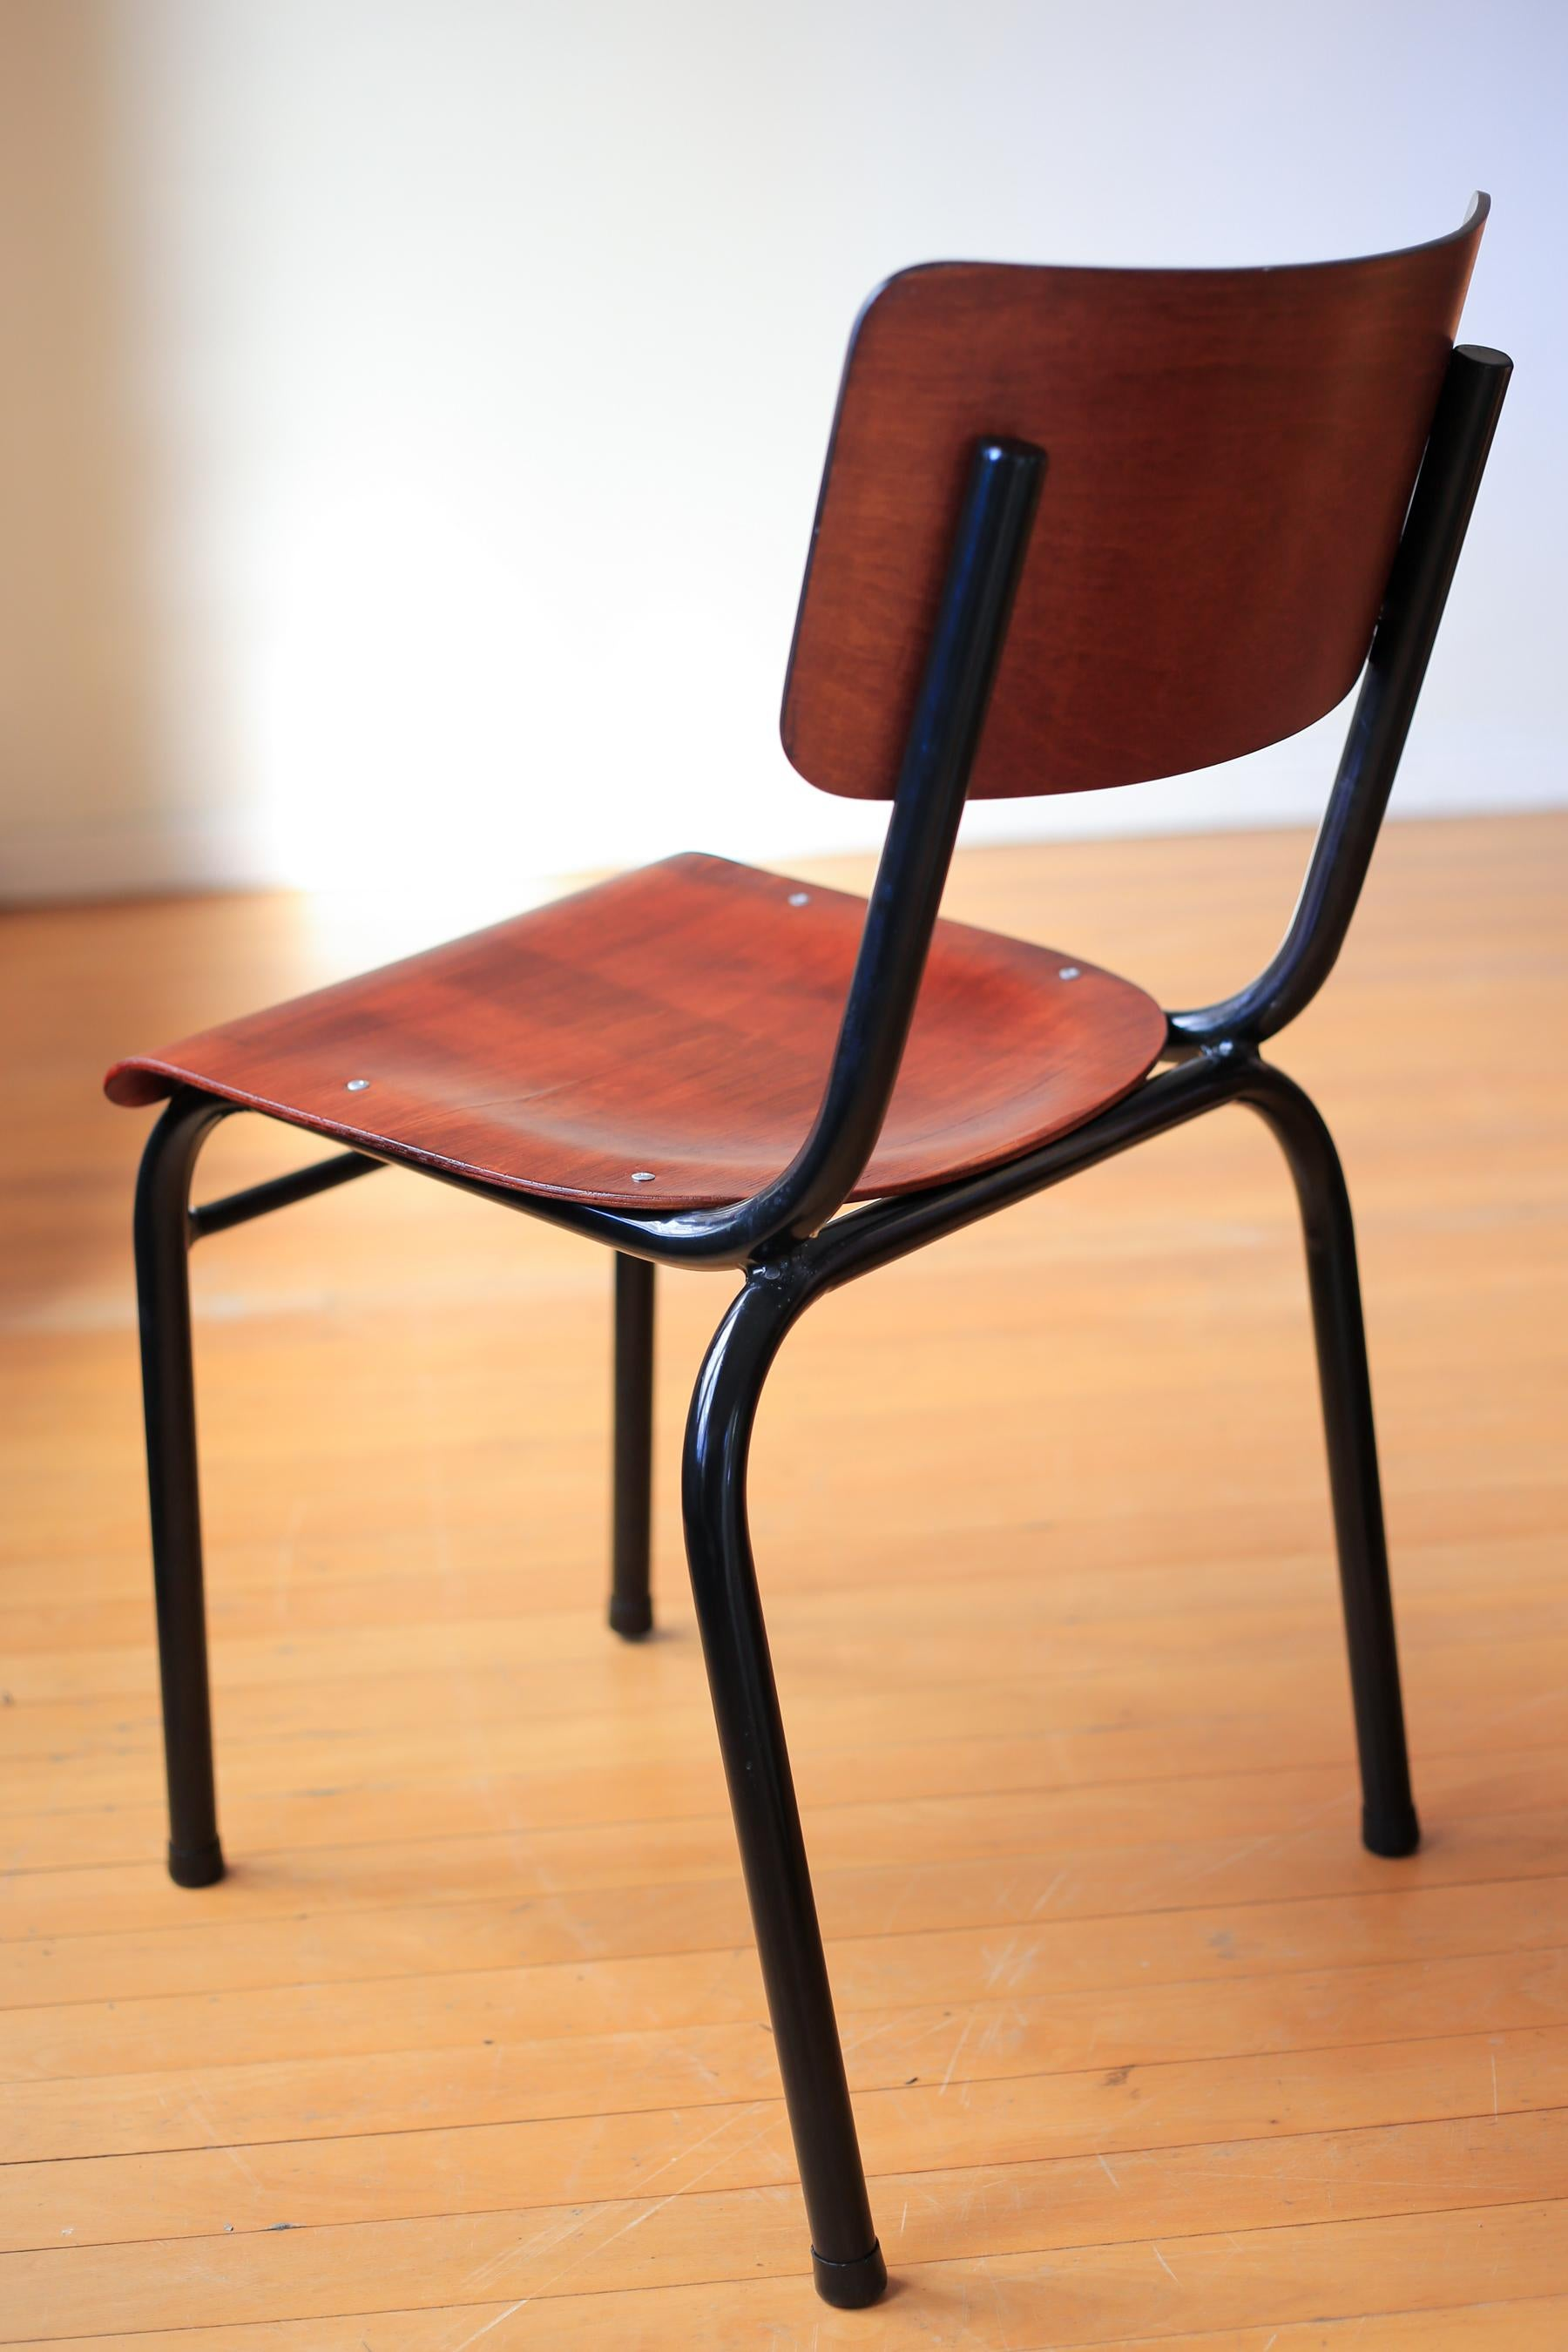 Refurbished Chairs Bauhaus Tubular Steel Stacking Chairs Refurbished